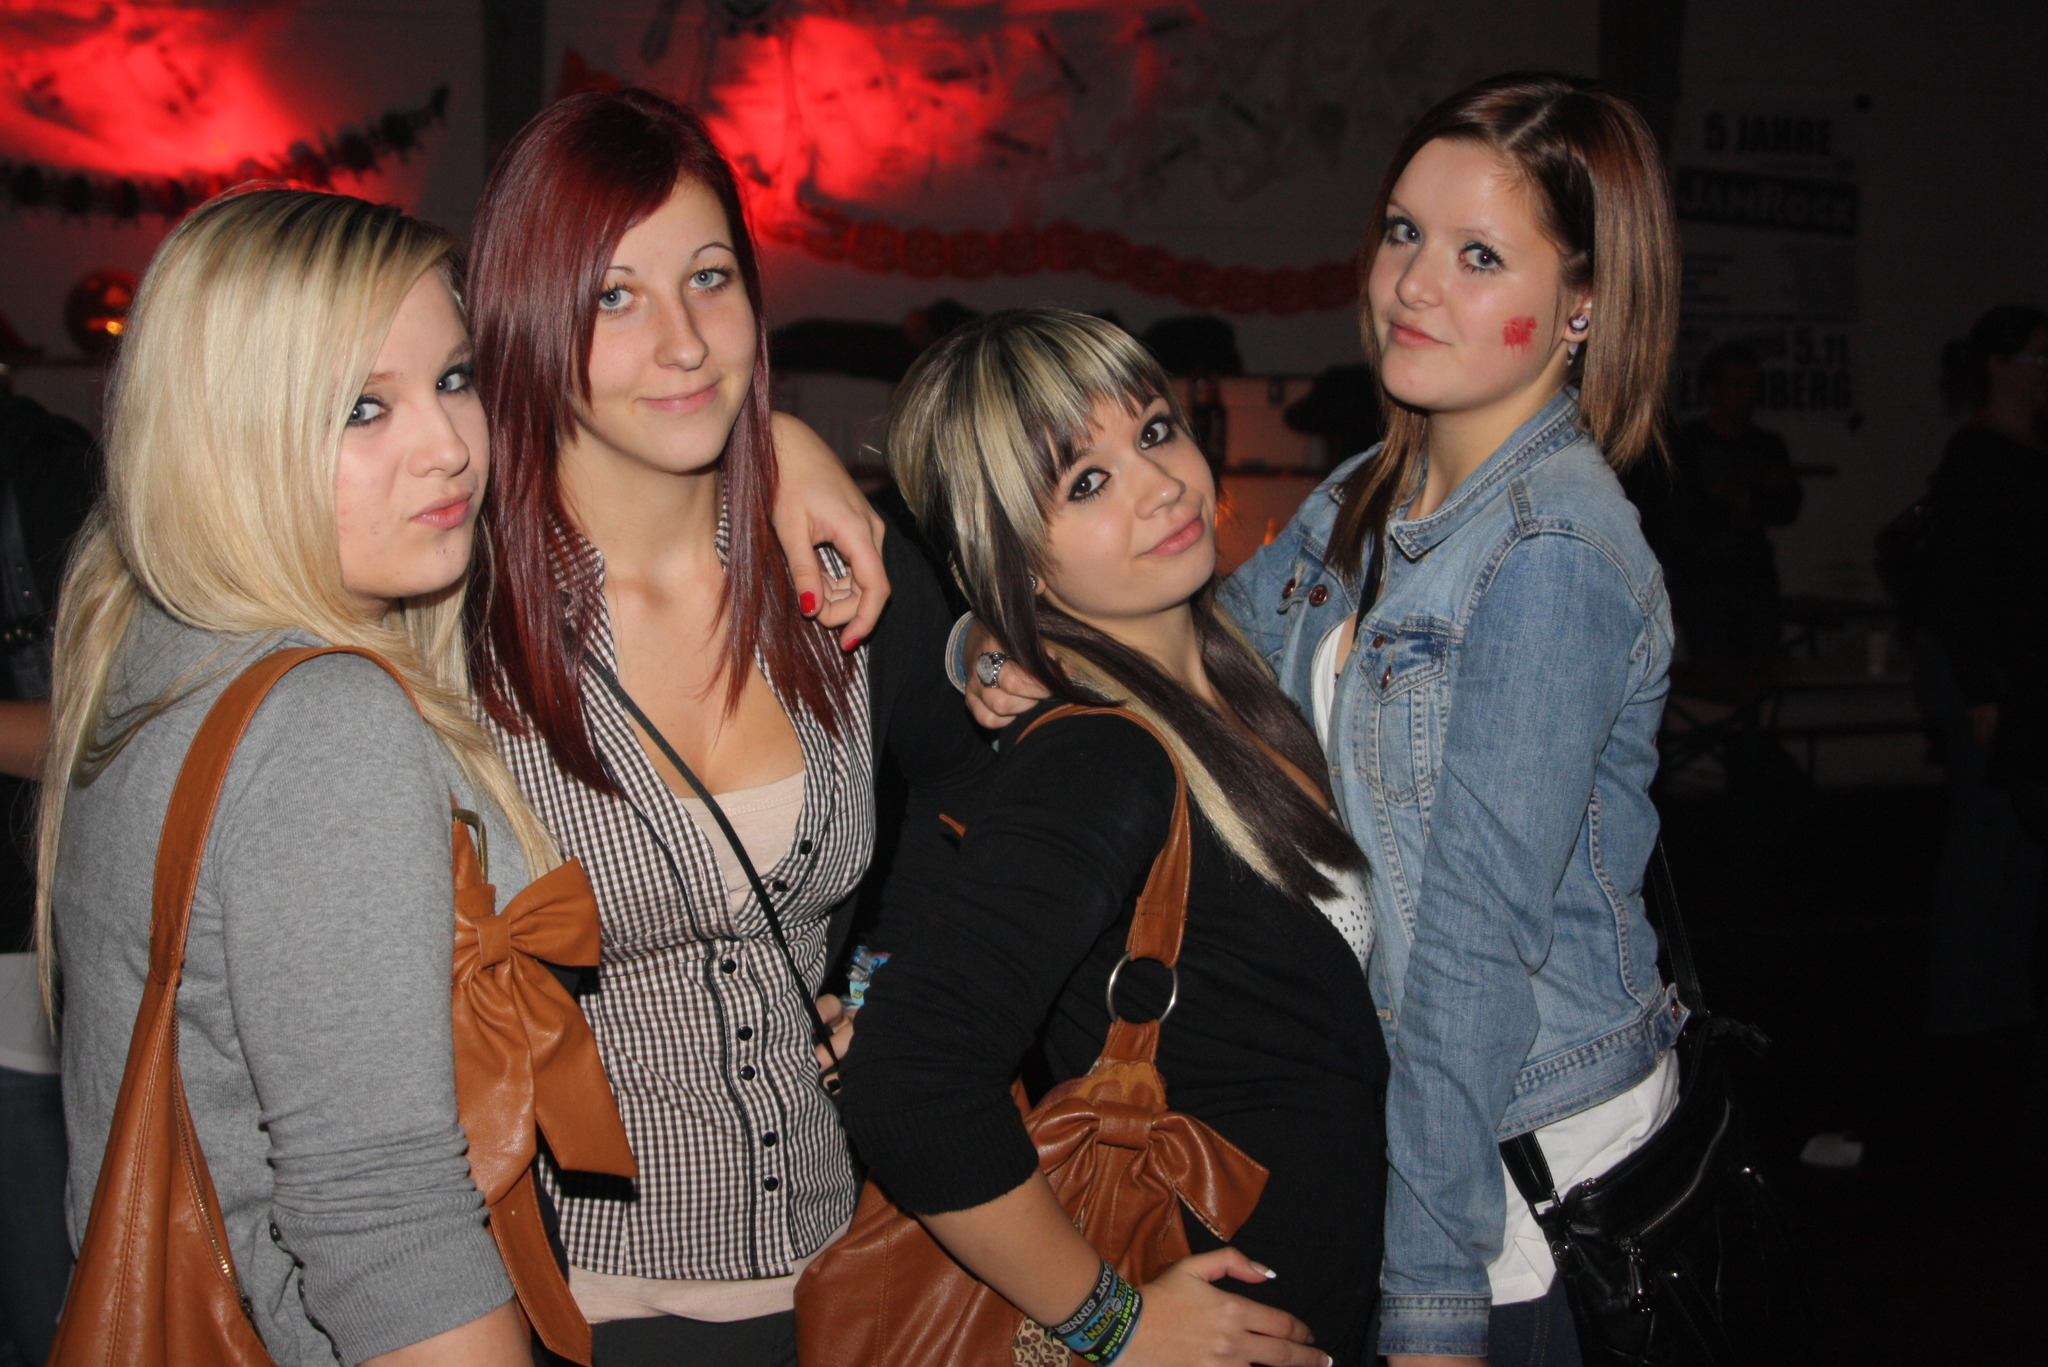 HALLOWEENPARTY 2012 in Gropetersdorf - Oberwart